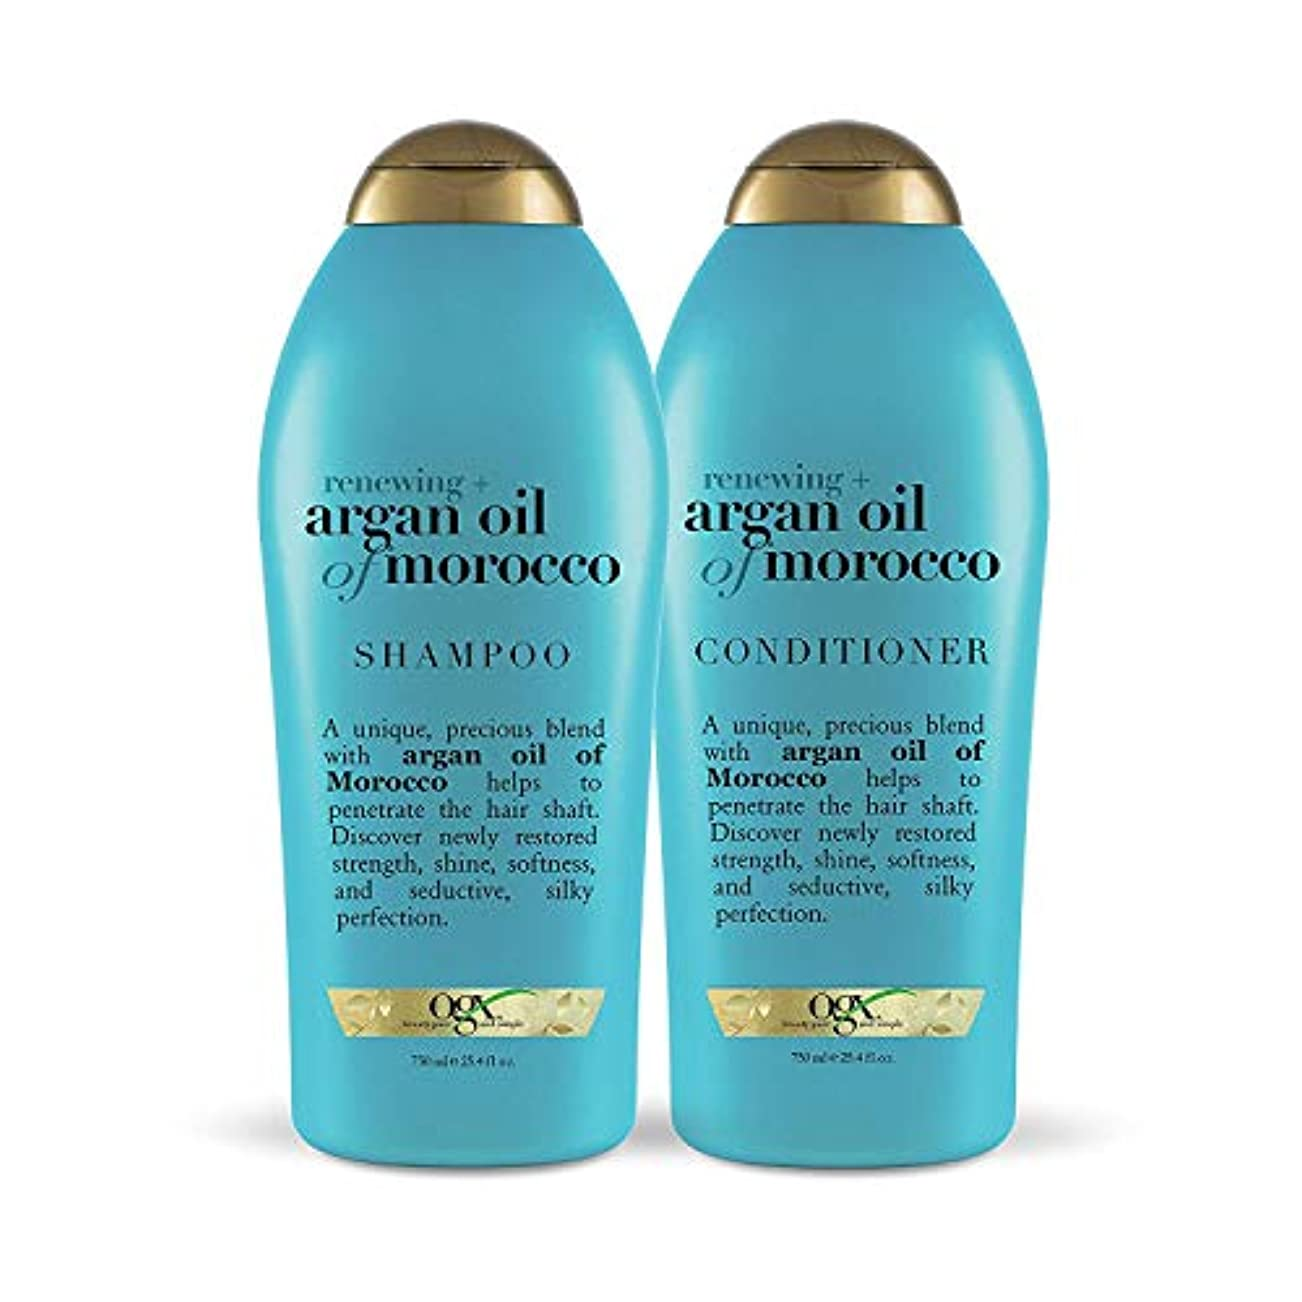 OGX Renewing Argan Oil of Morocco Shampoo & Conditioner 1セット (25.4 fl. Oz.) [海外直送品 ]